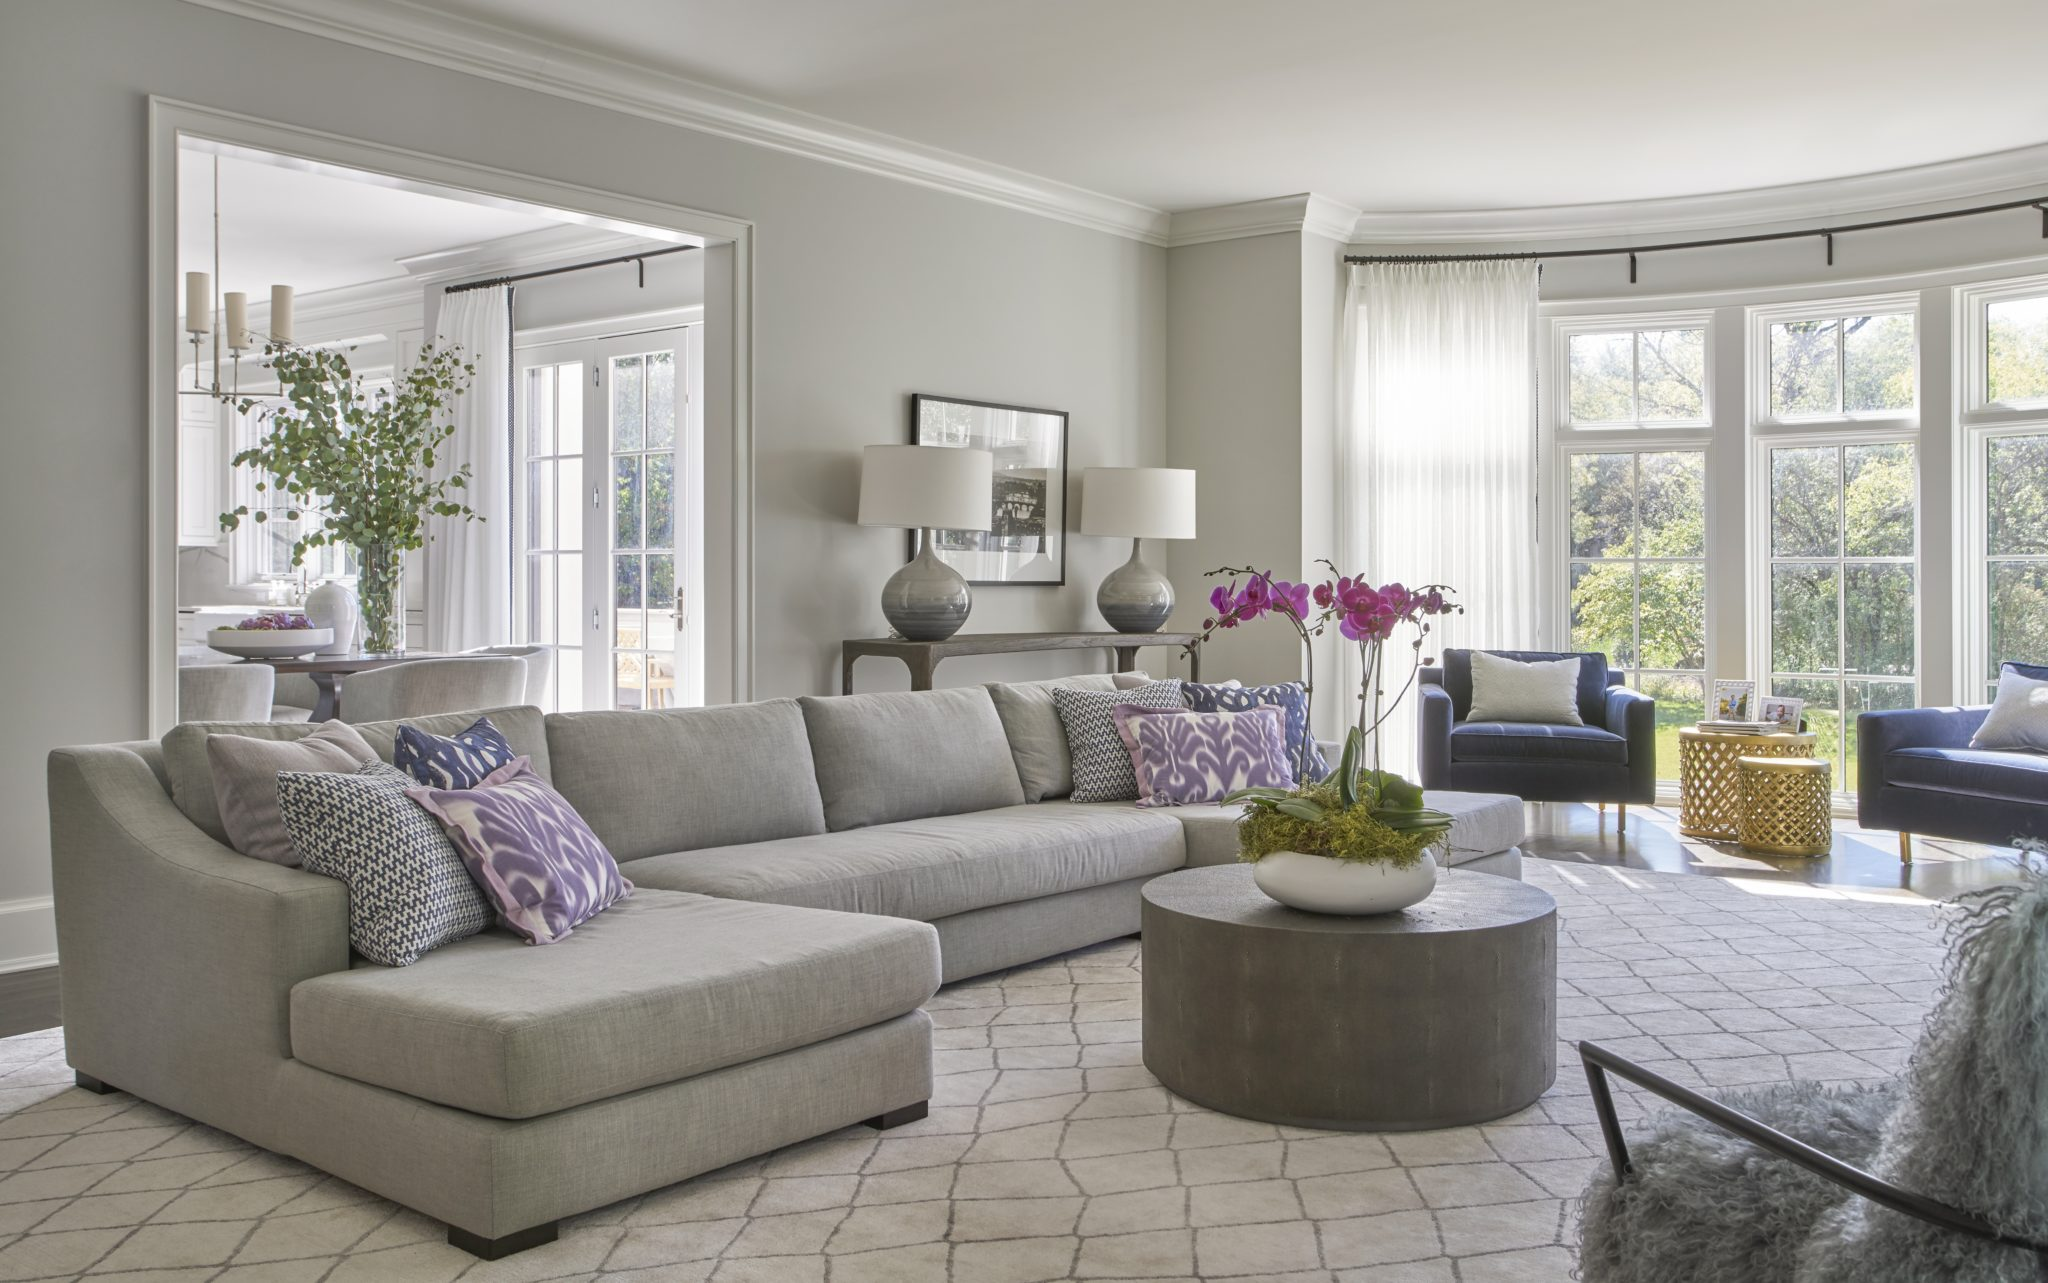 Winnetka home, styled family room with ample seating and fun accessories. by Elizabeth Krueger Design